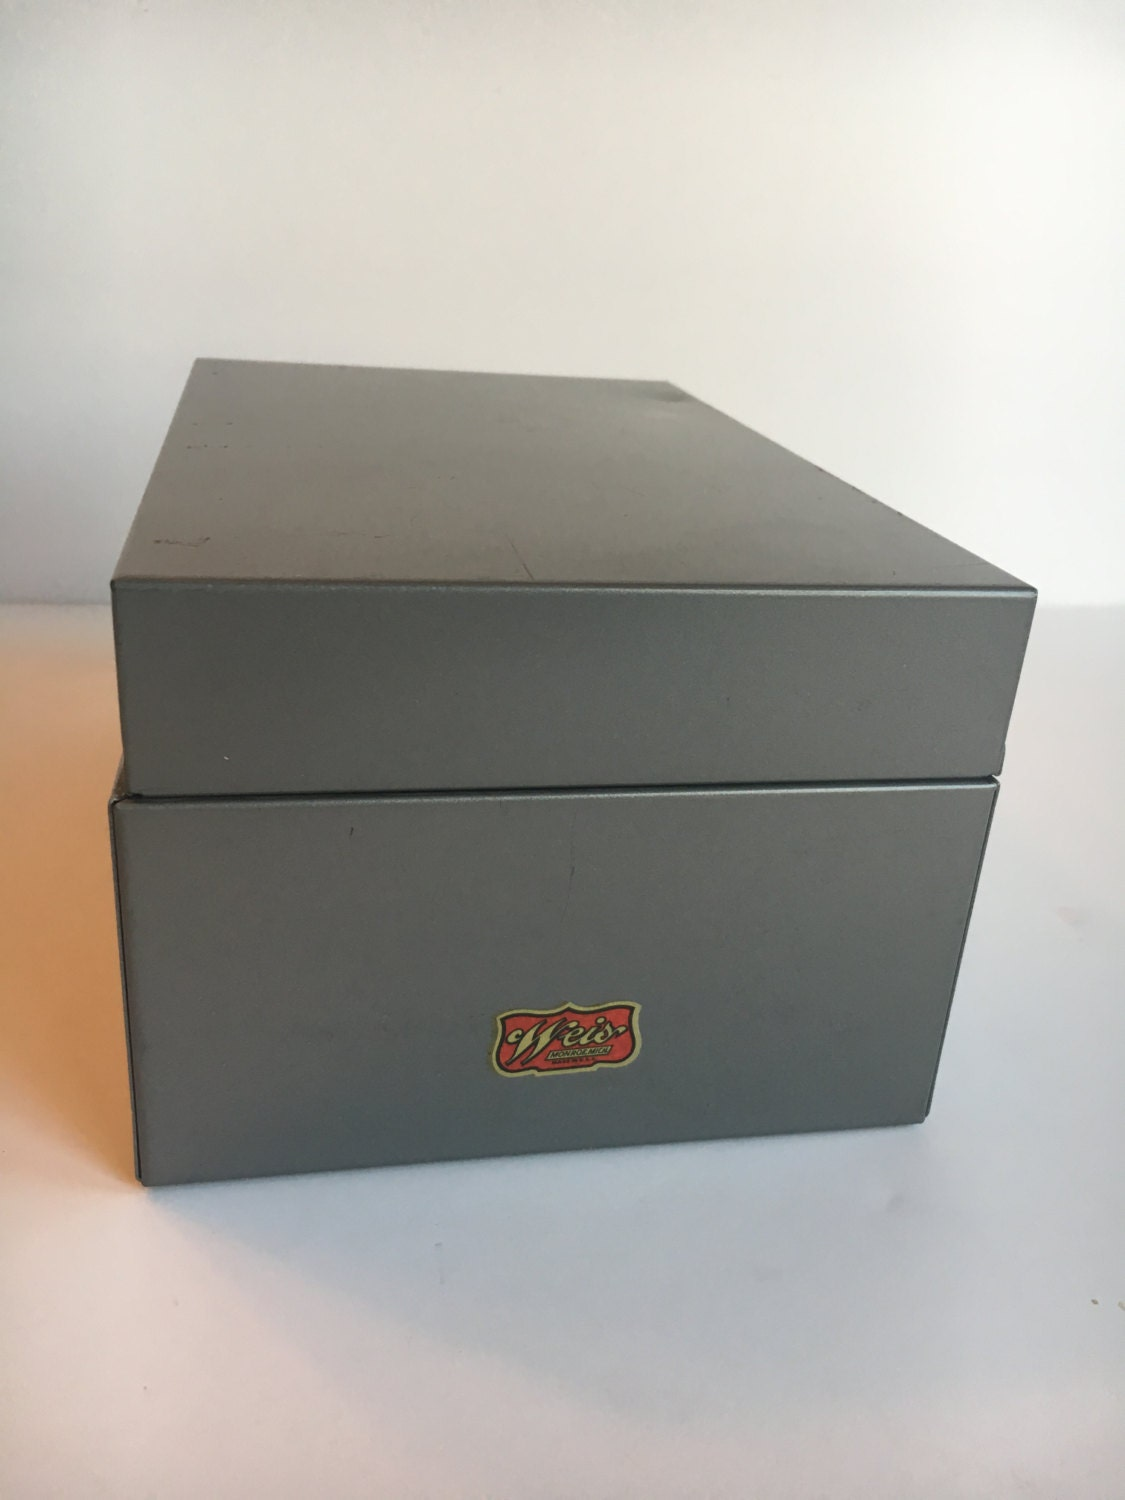 File Cards 10 Heart Svg: Weis Metal Index Card File Box W/ A-Z Dividers And Index